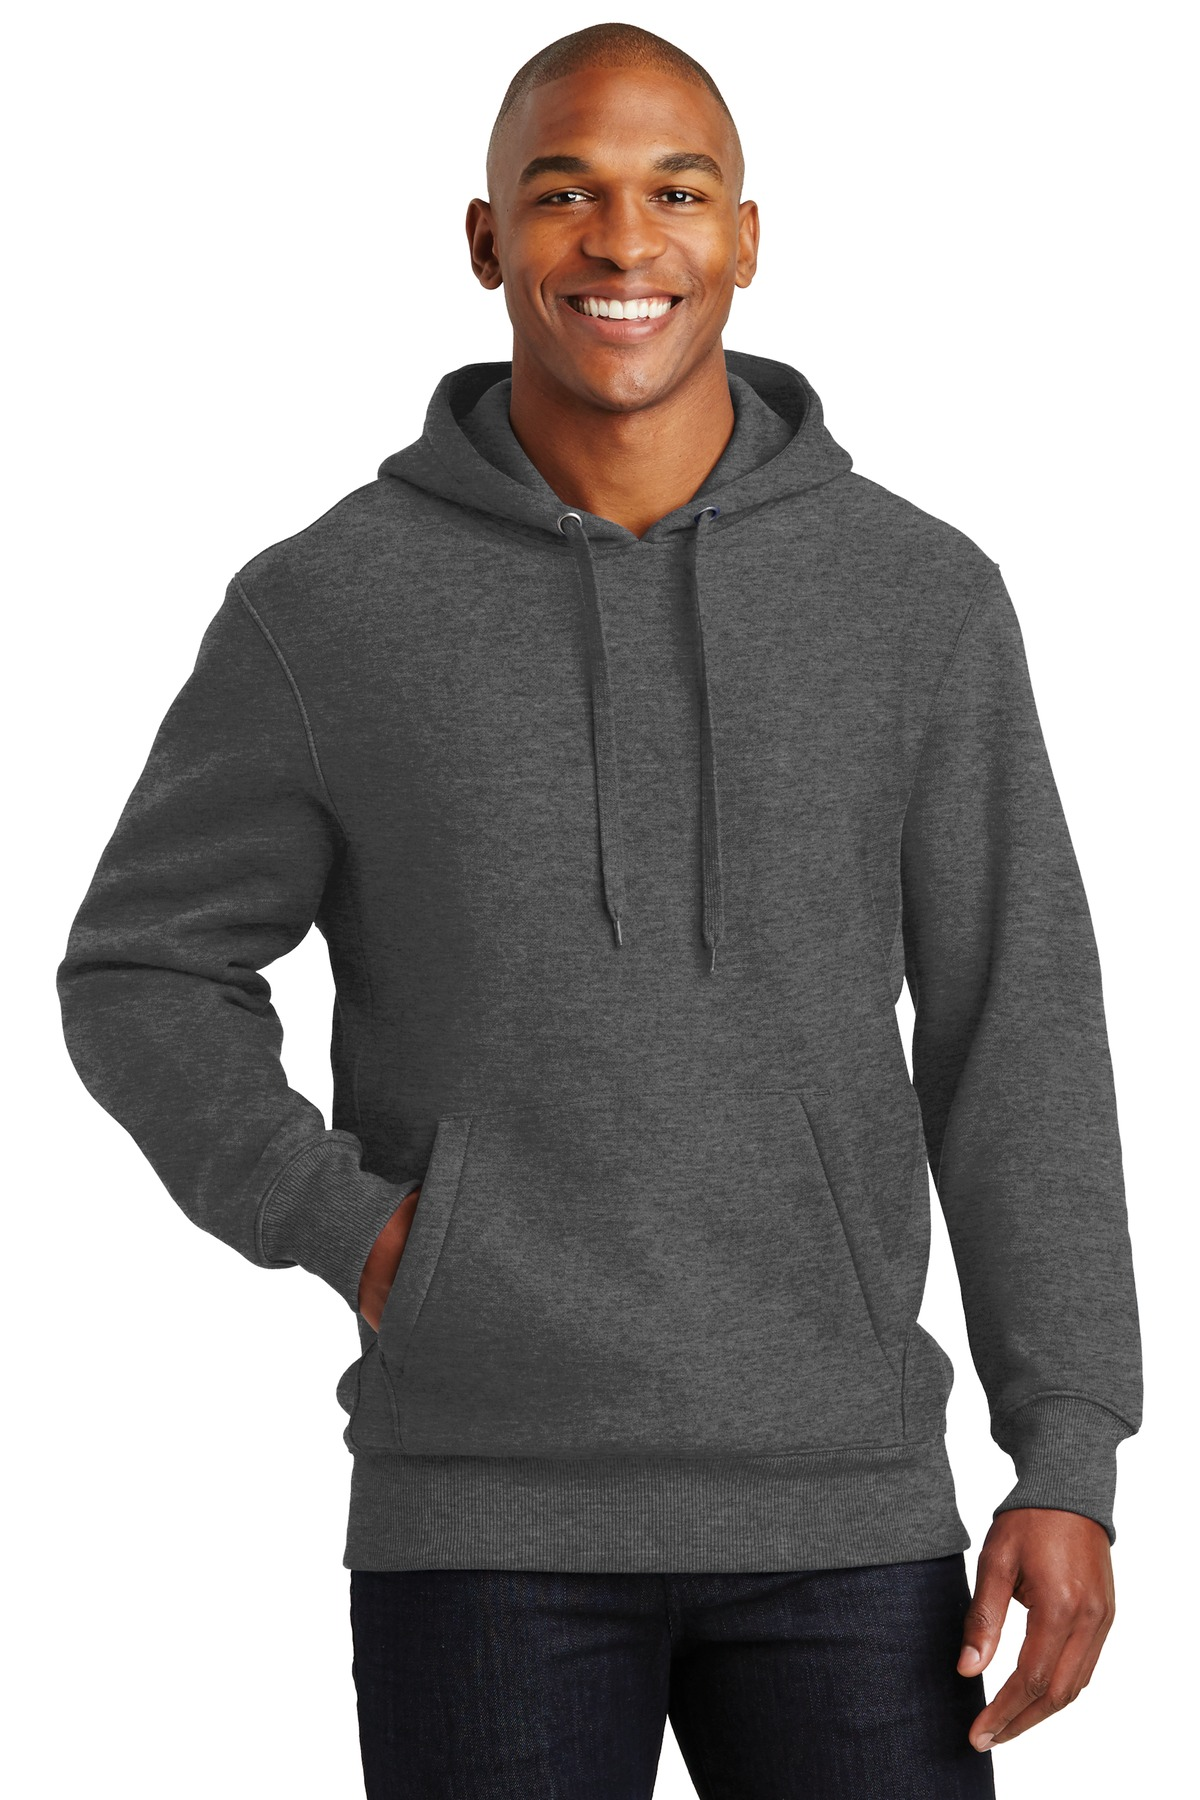 Sport-Tek ®  Super Heavyweight Pullover Hooded Sweatshirt.  F281 - Graphite Heather